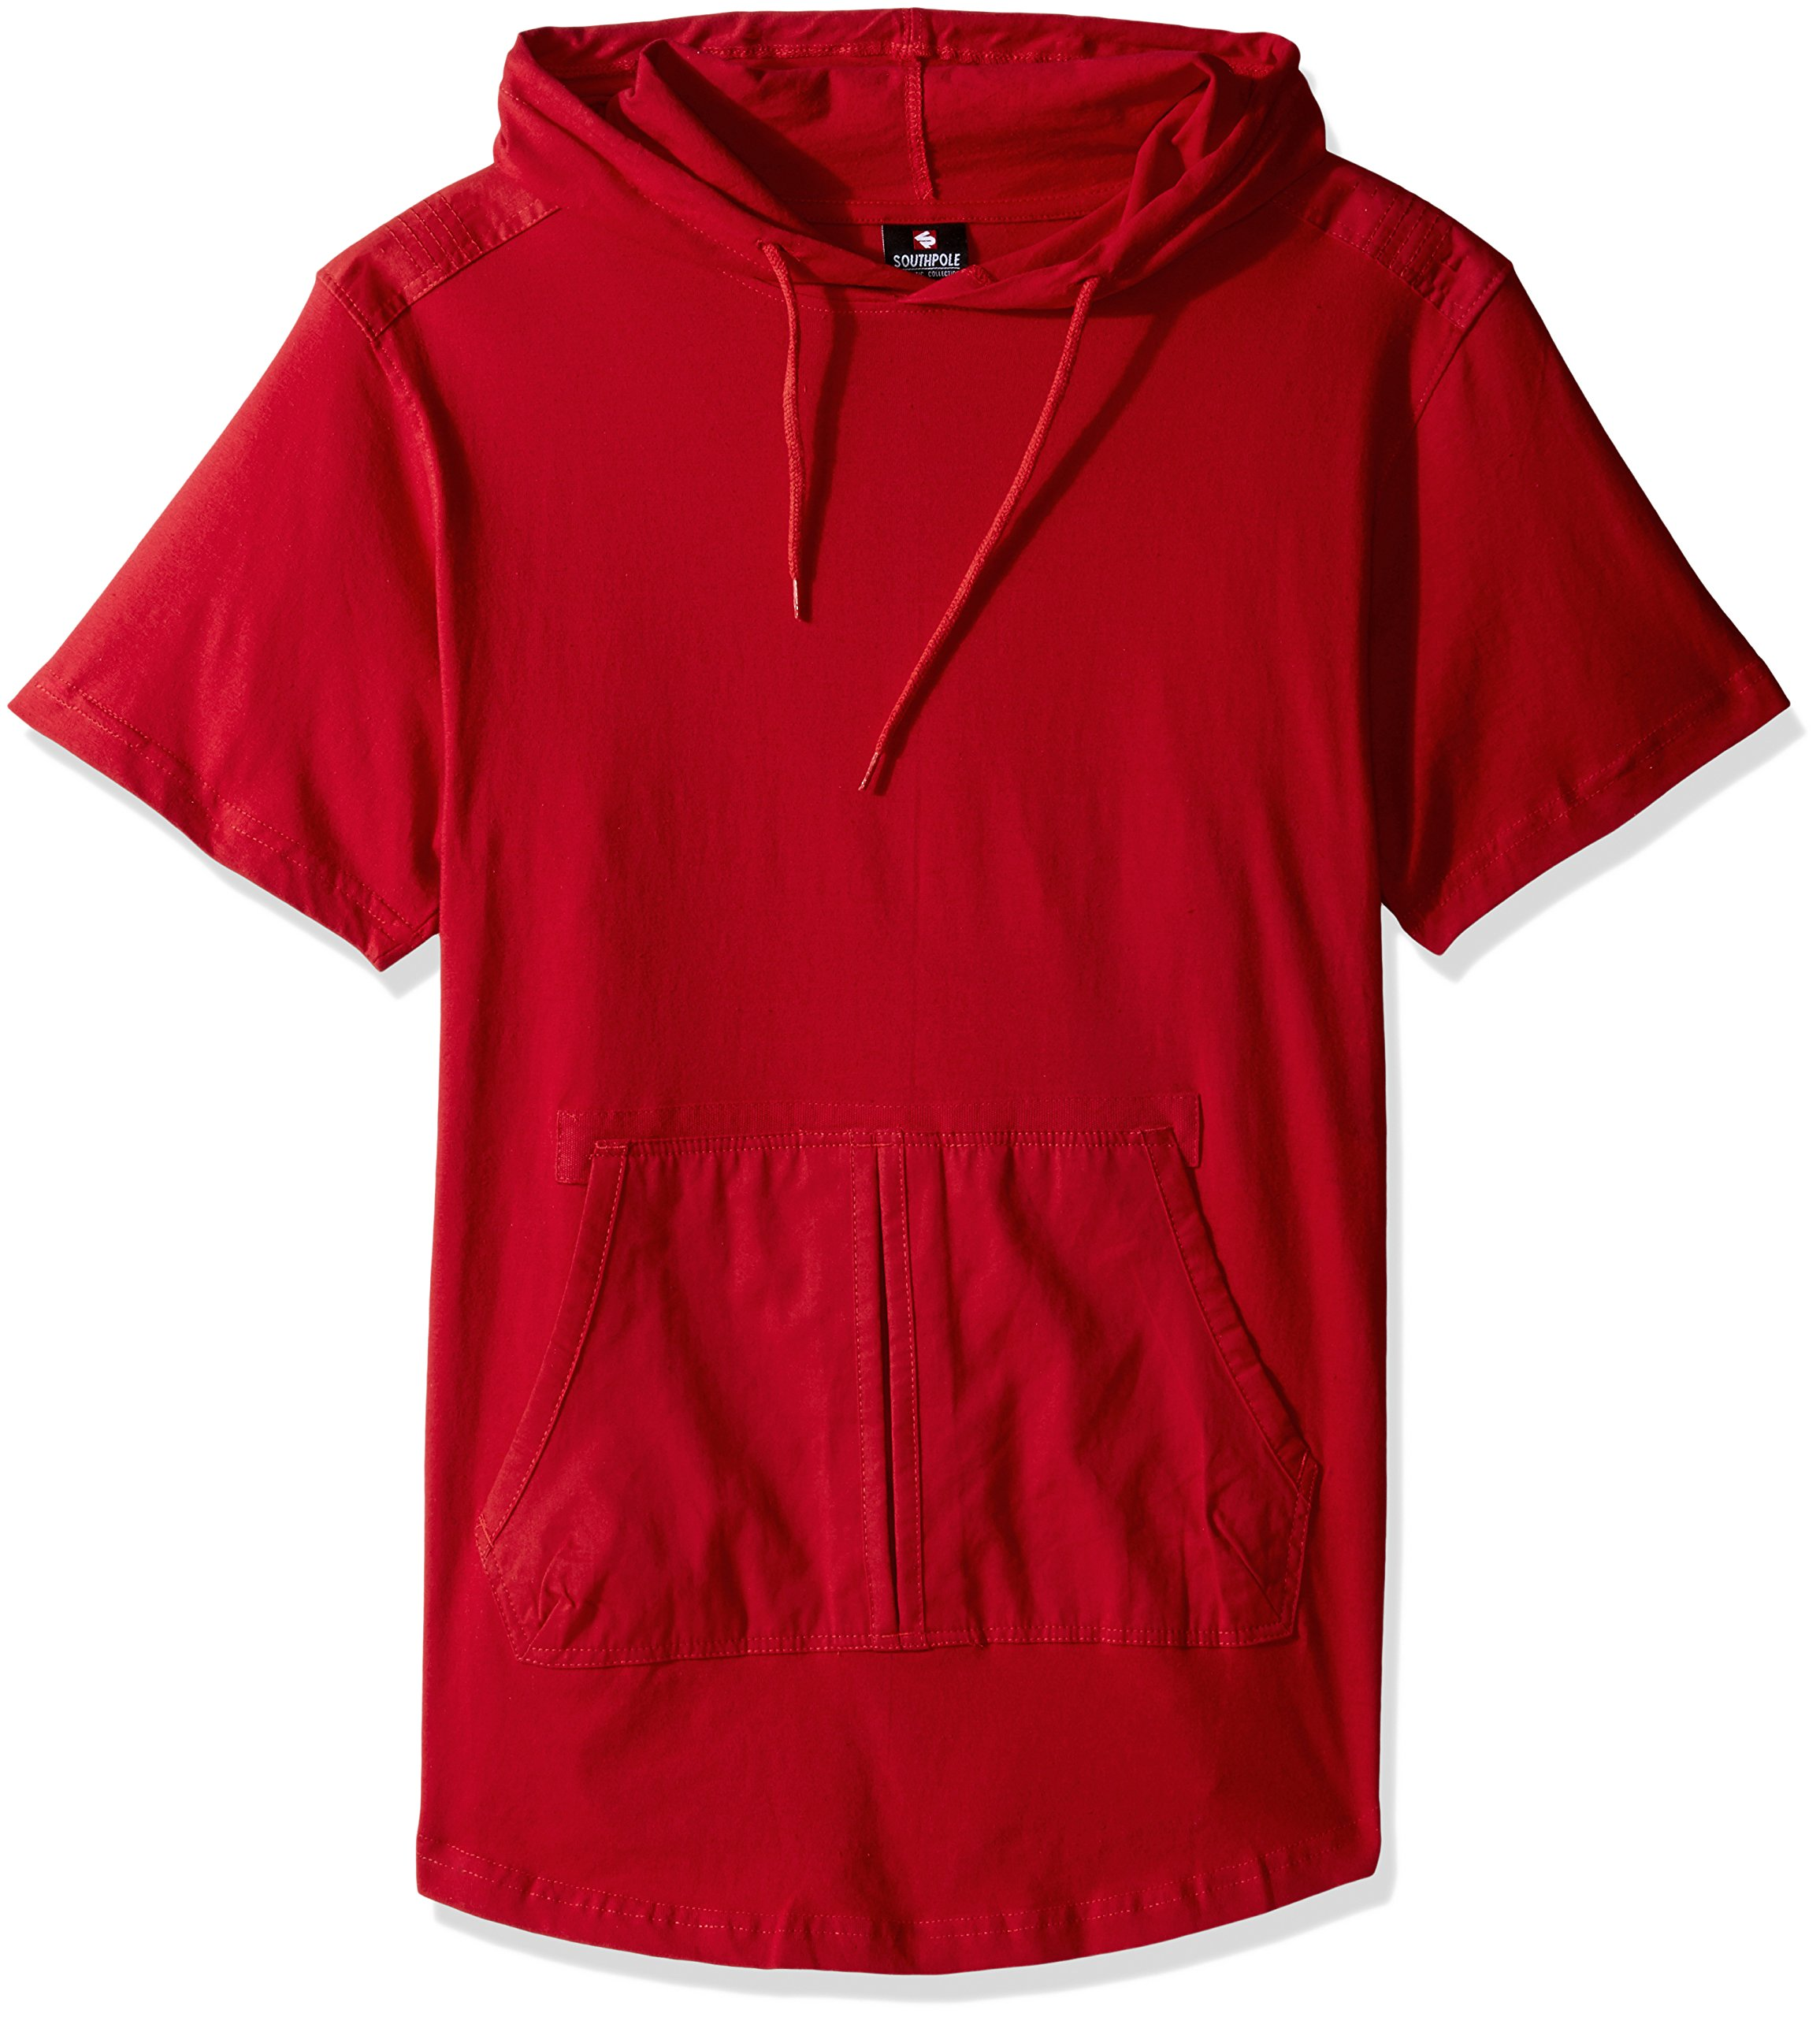 Southpole Men's Short Sleeve Hooded Scallop Tee with Fine Twill Detail, Red, Large